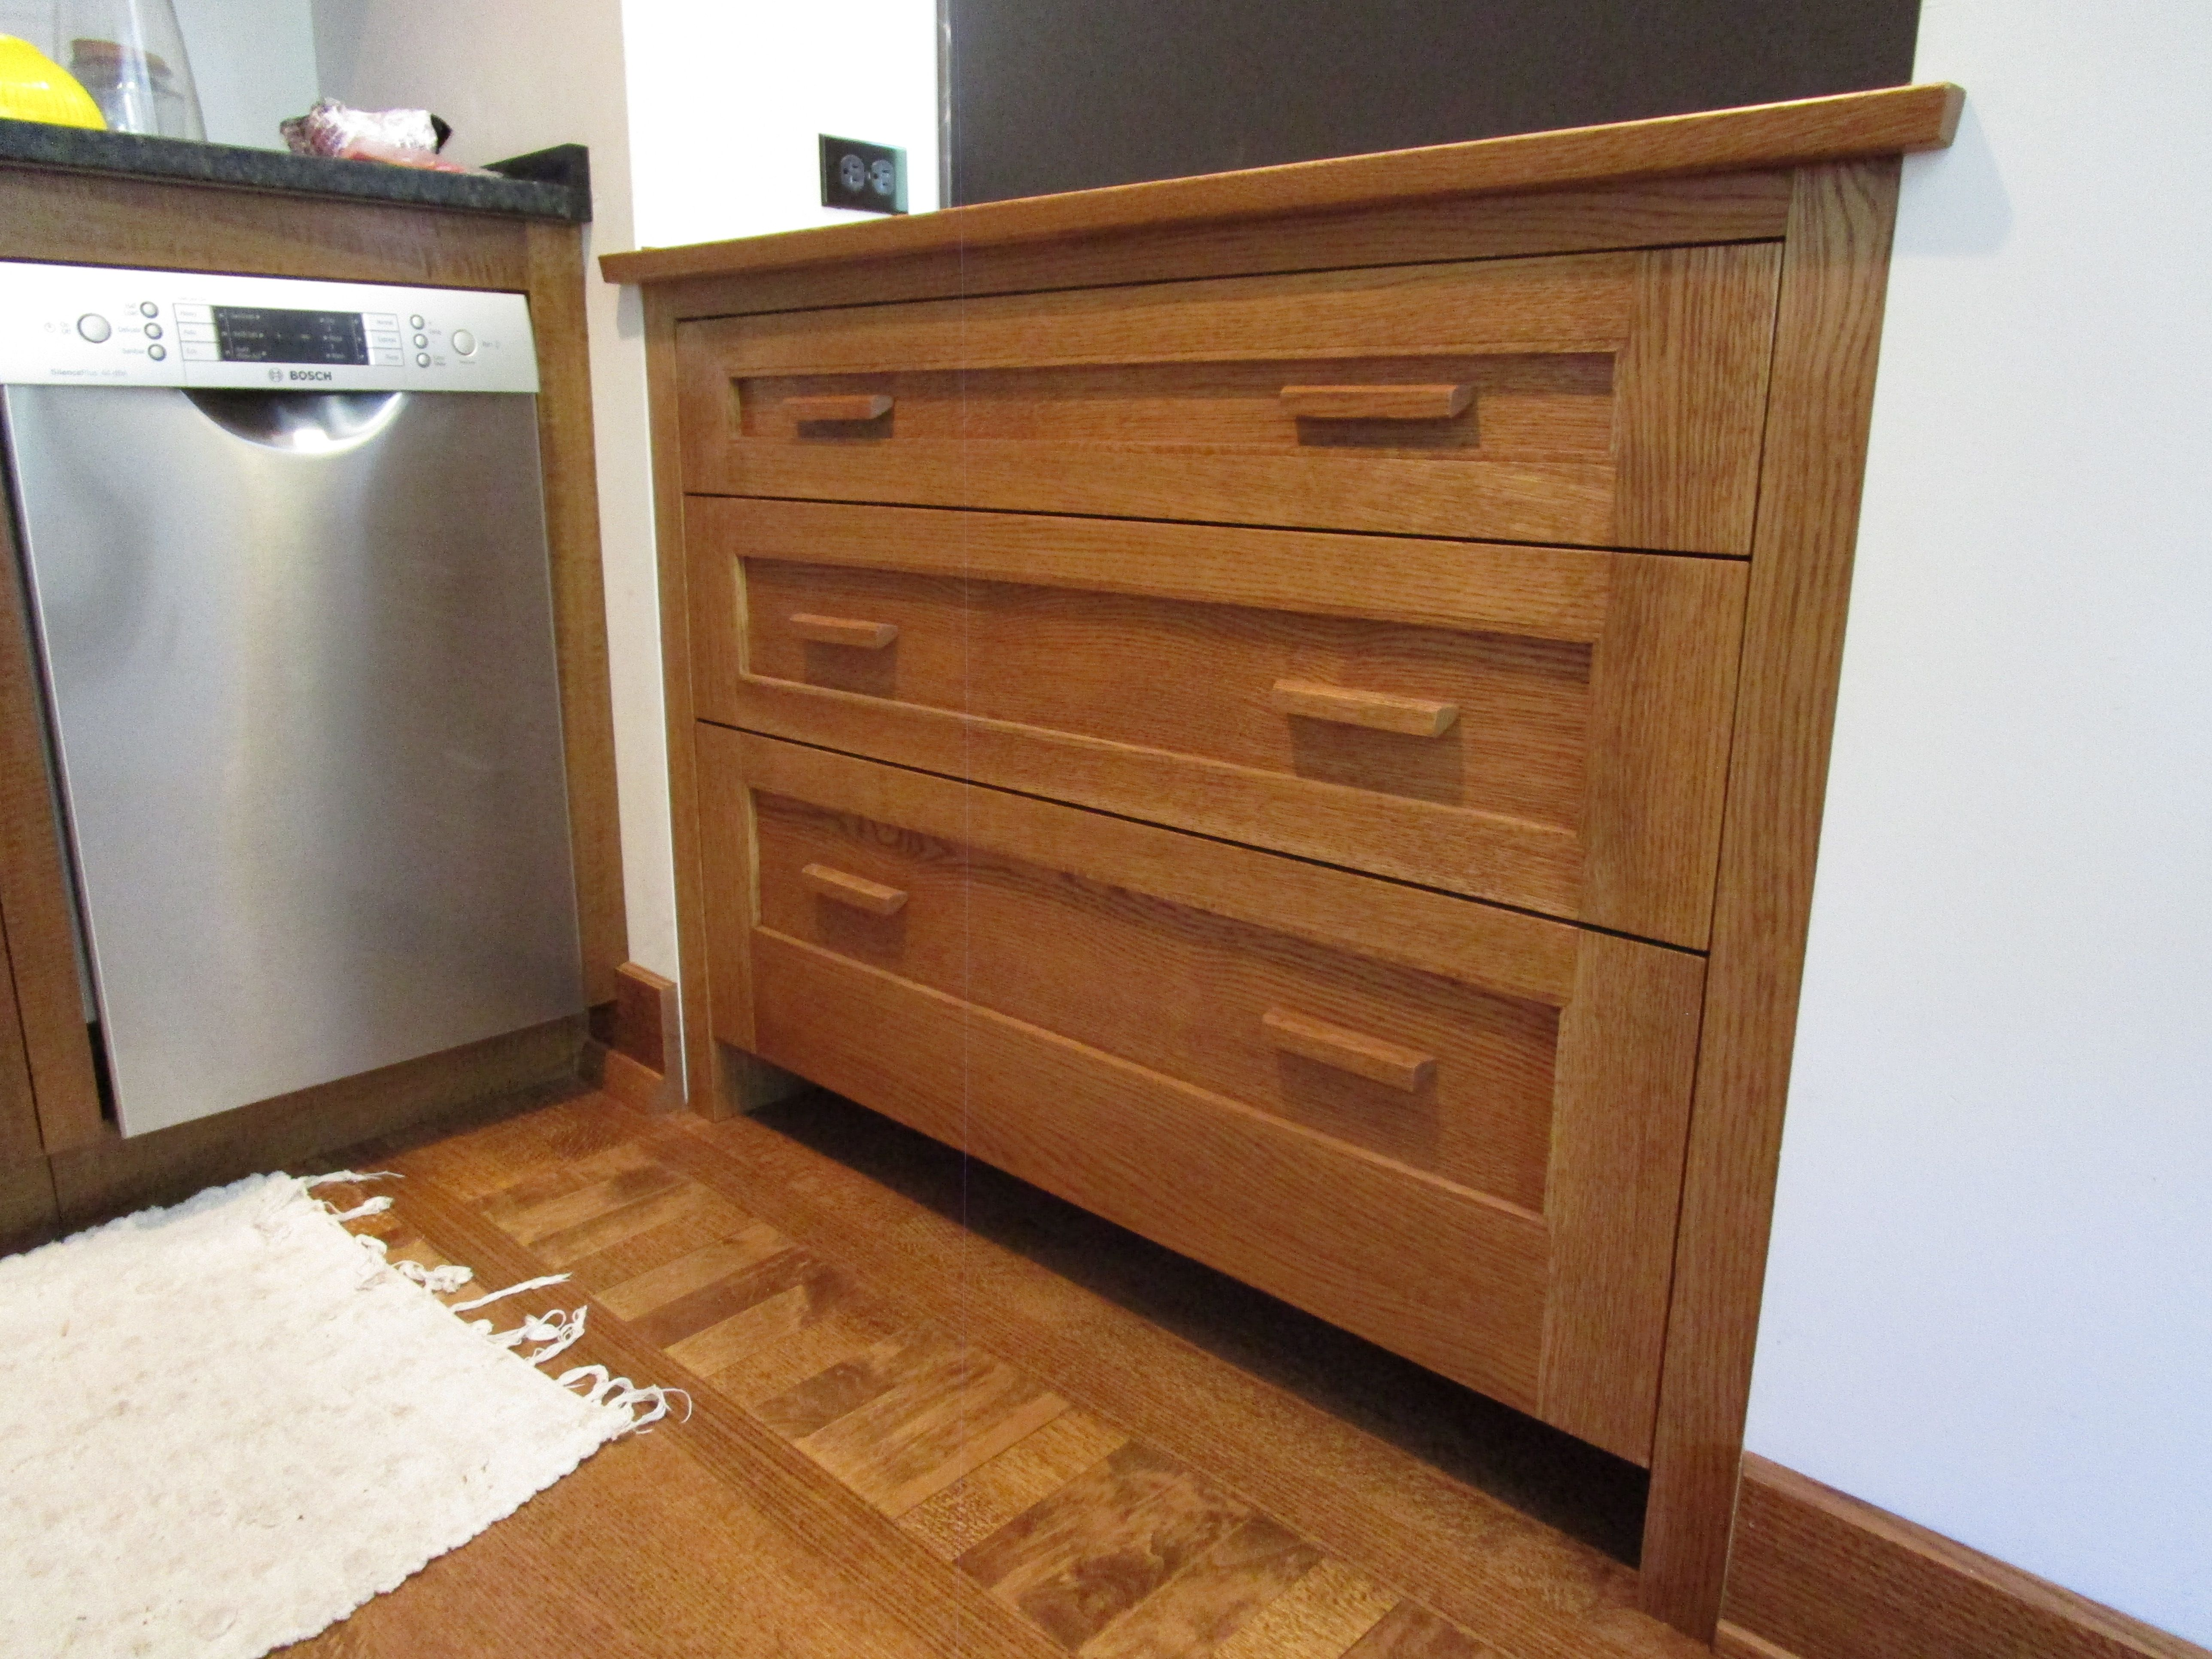 Hand Crafted Mission Style Kitchen Cabinet by J. Kritzer ...